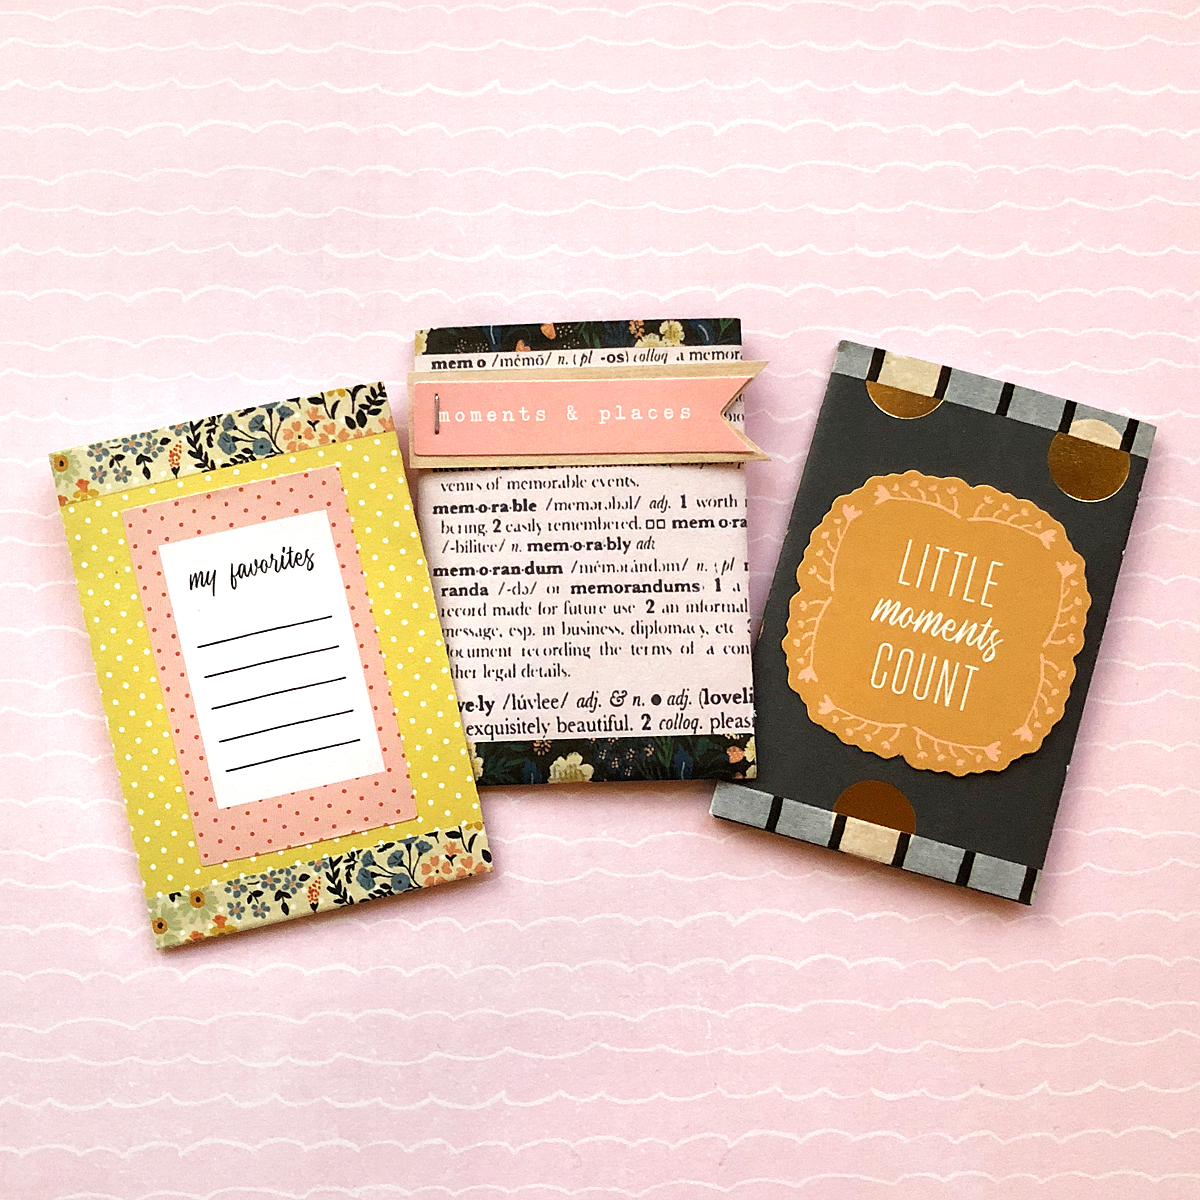 Journal Pockets made with the Journal Guide by Enza Gudor for We R Memory Keepers